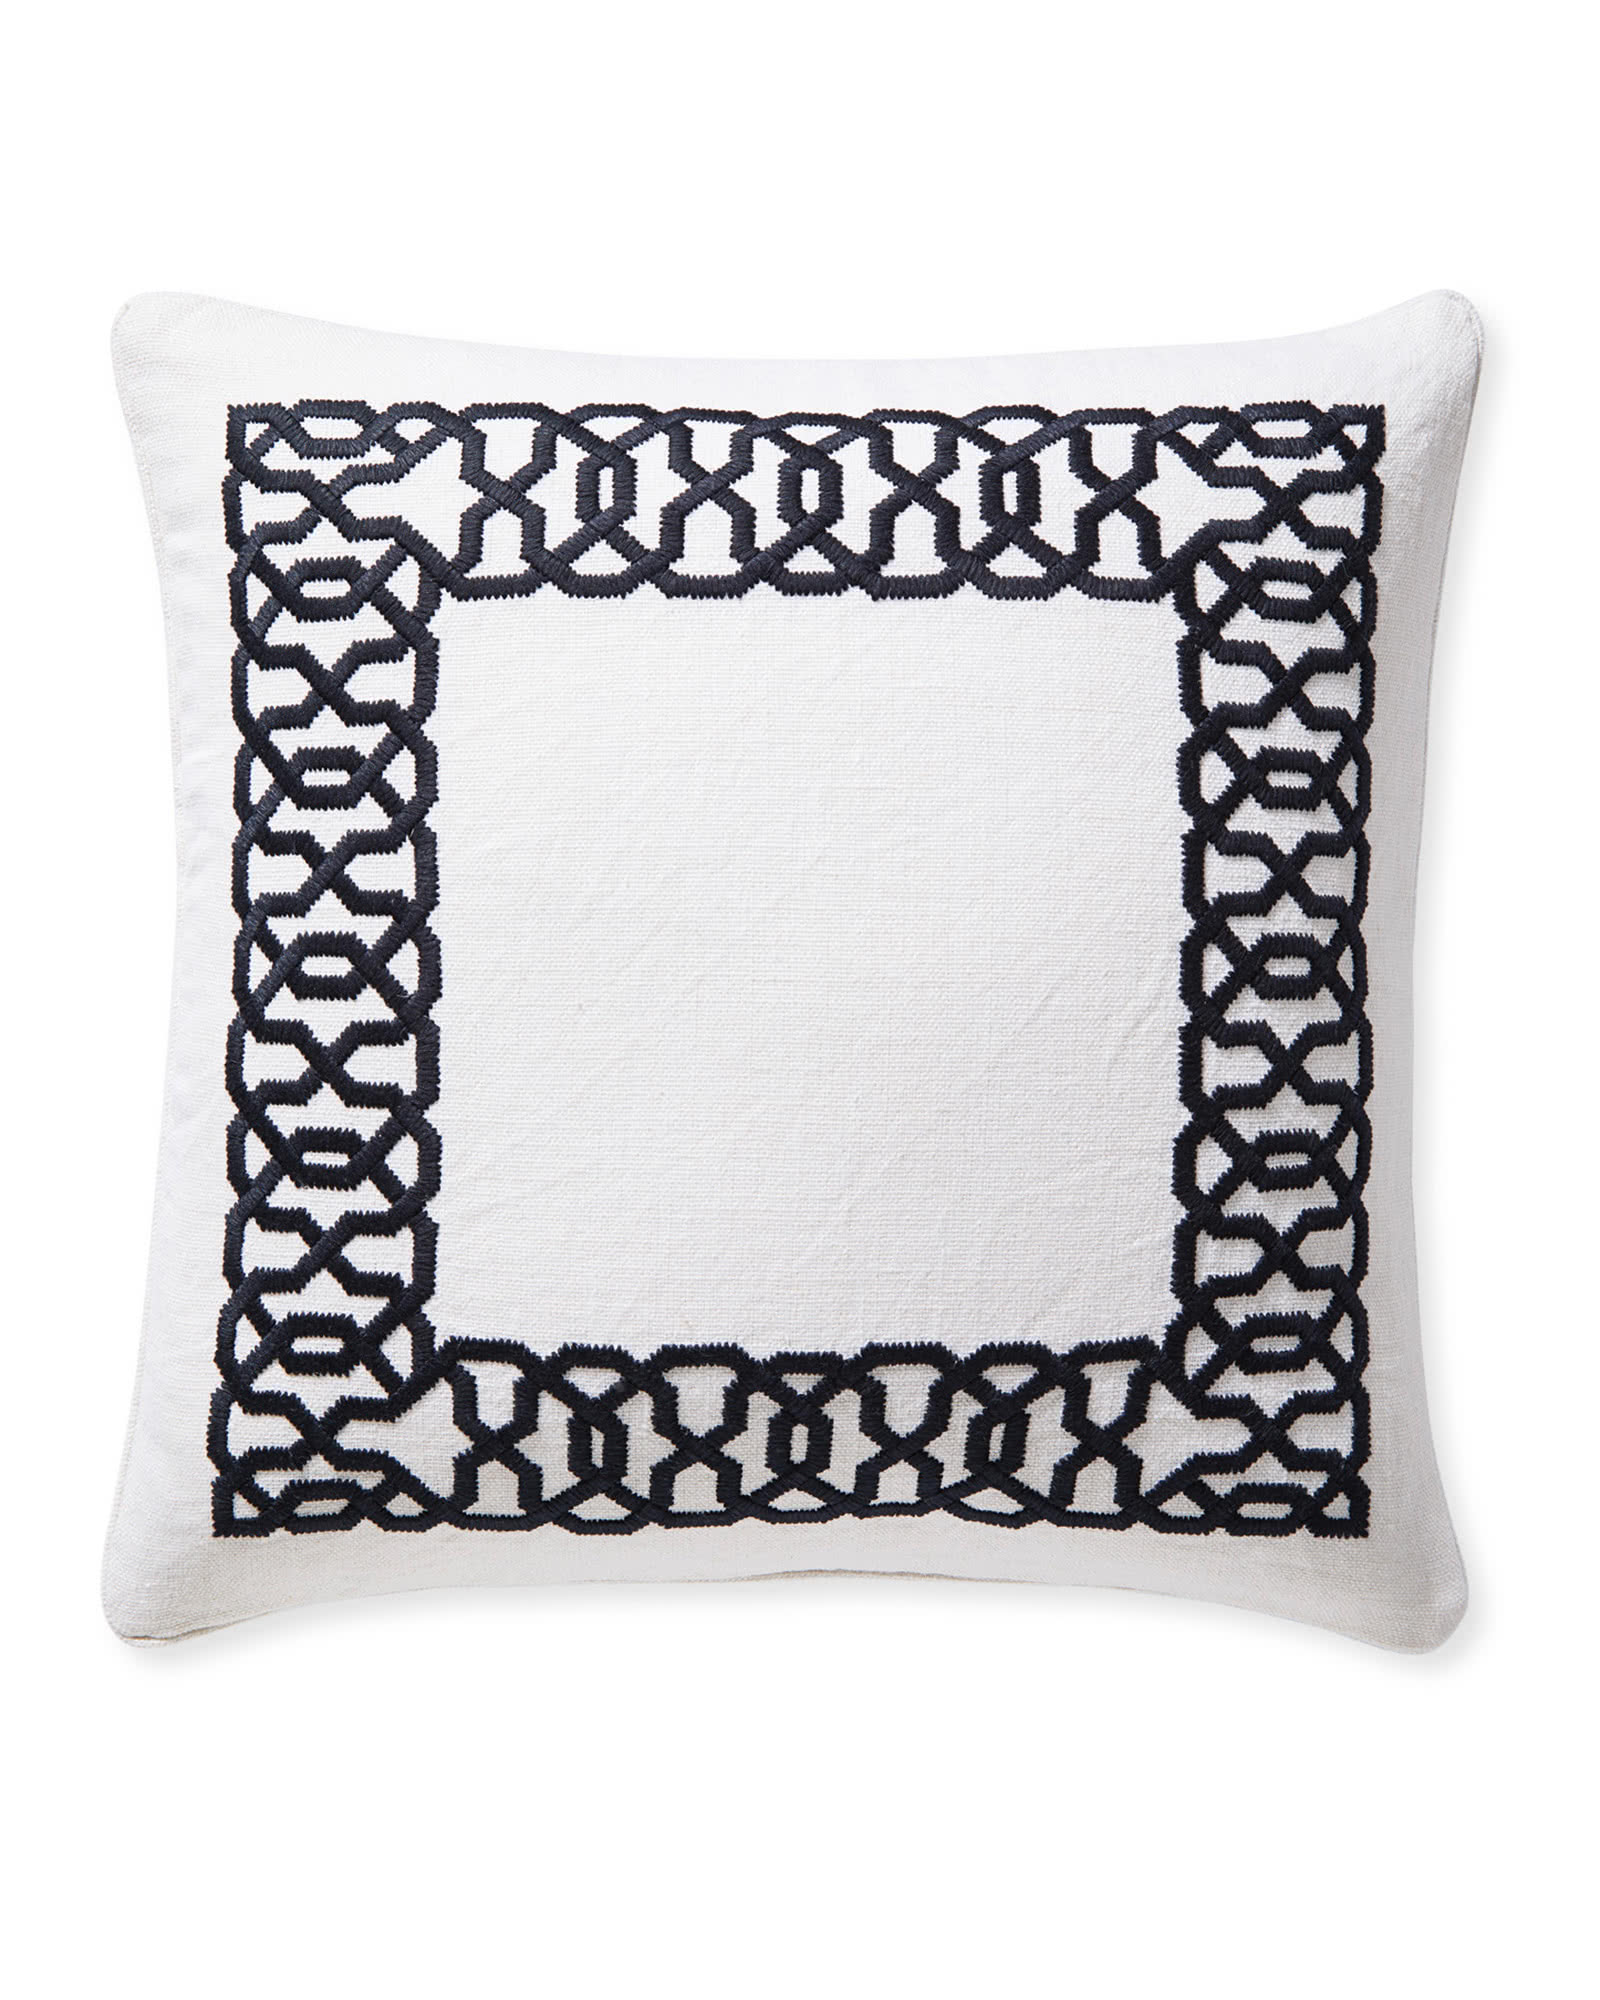 Jetty Pillow Cover, Midnight